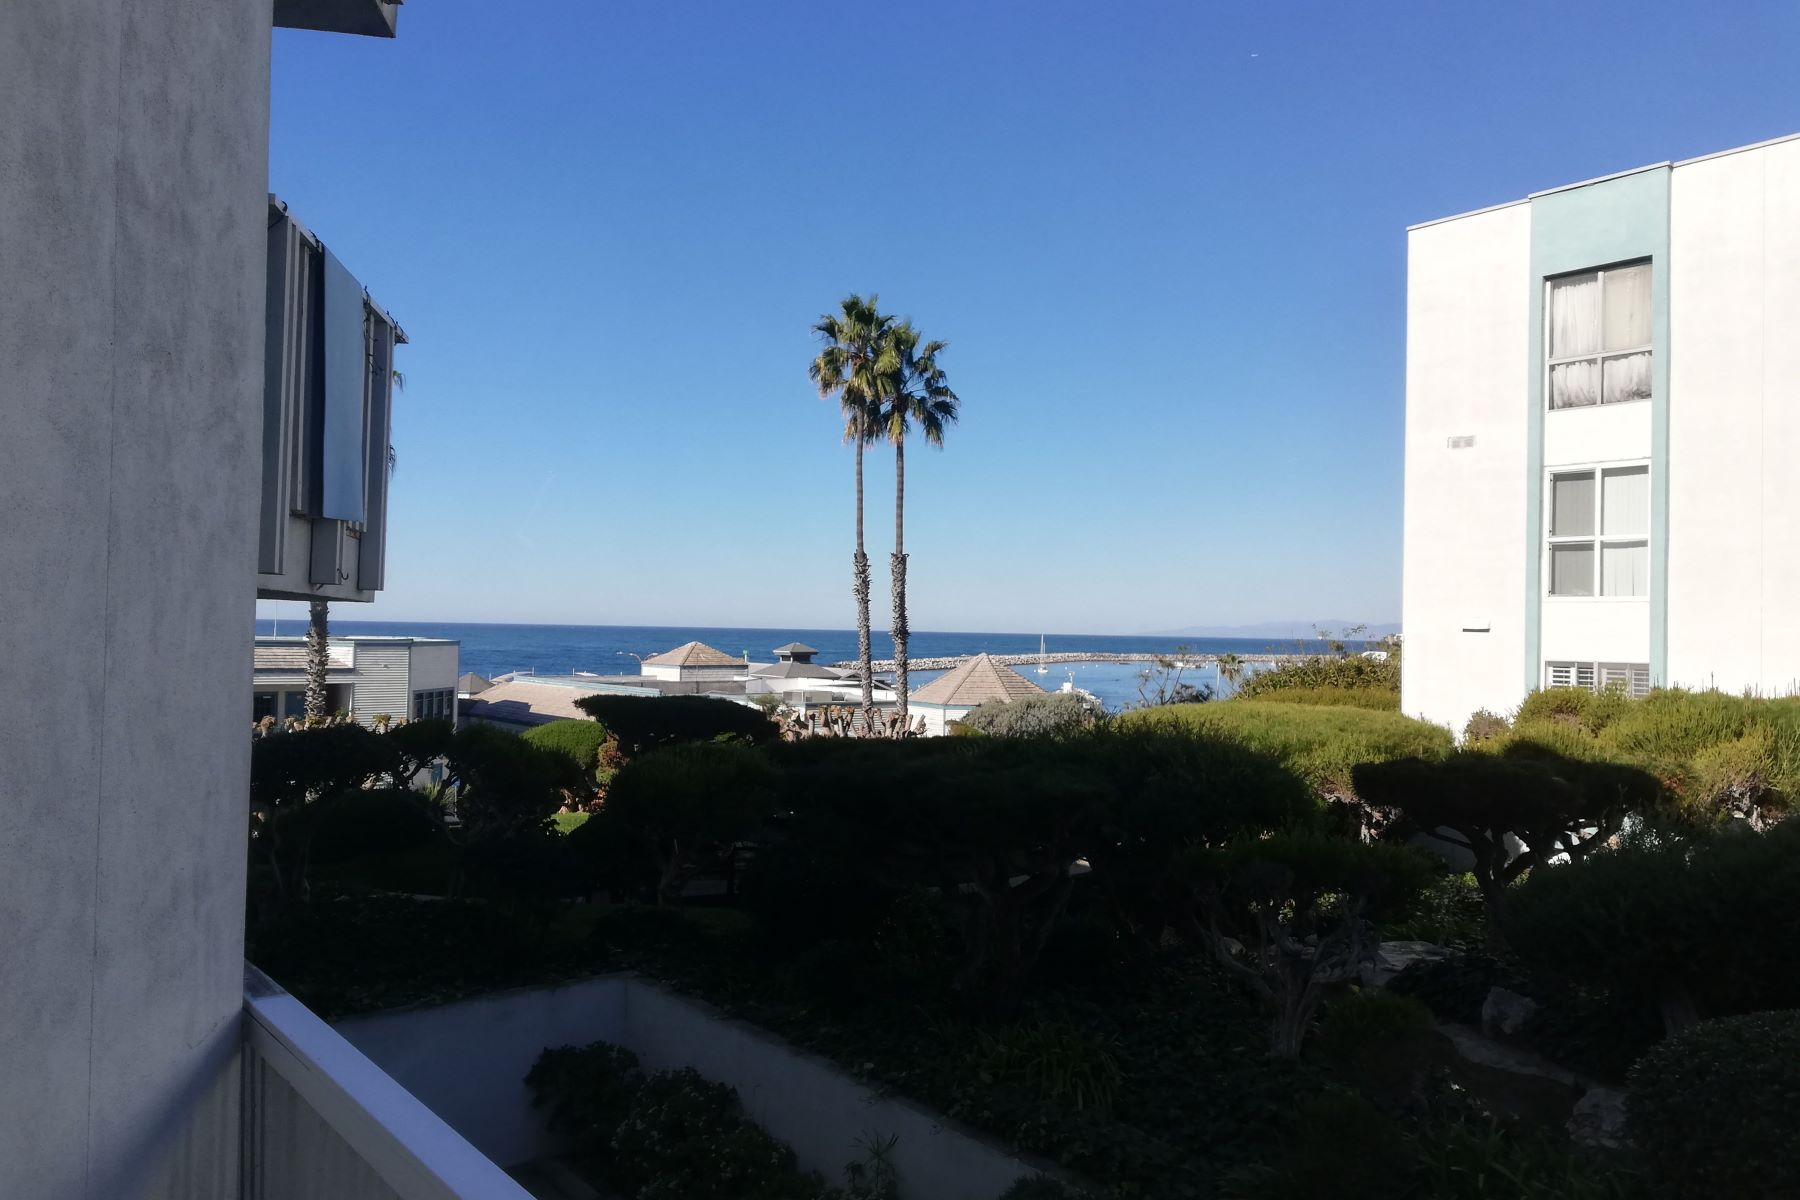 Condominiums for Sale at 620 The Village #112, Redondo Beach, CA 90277 620 The Village #112 Redondo Beach, California 90277 United States